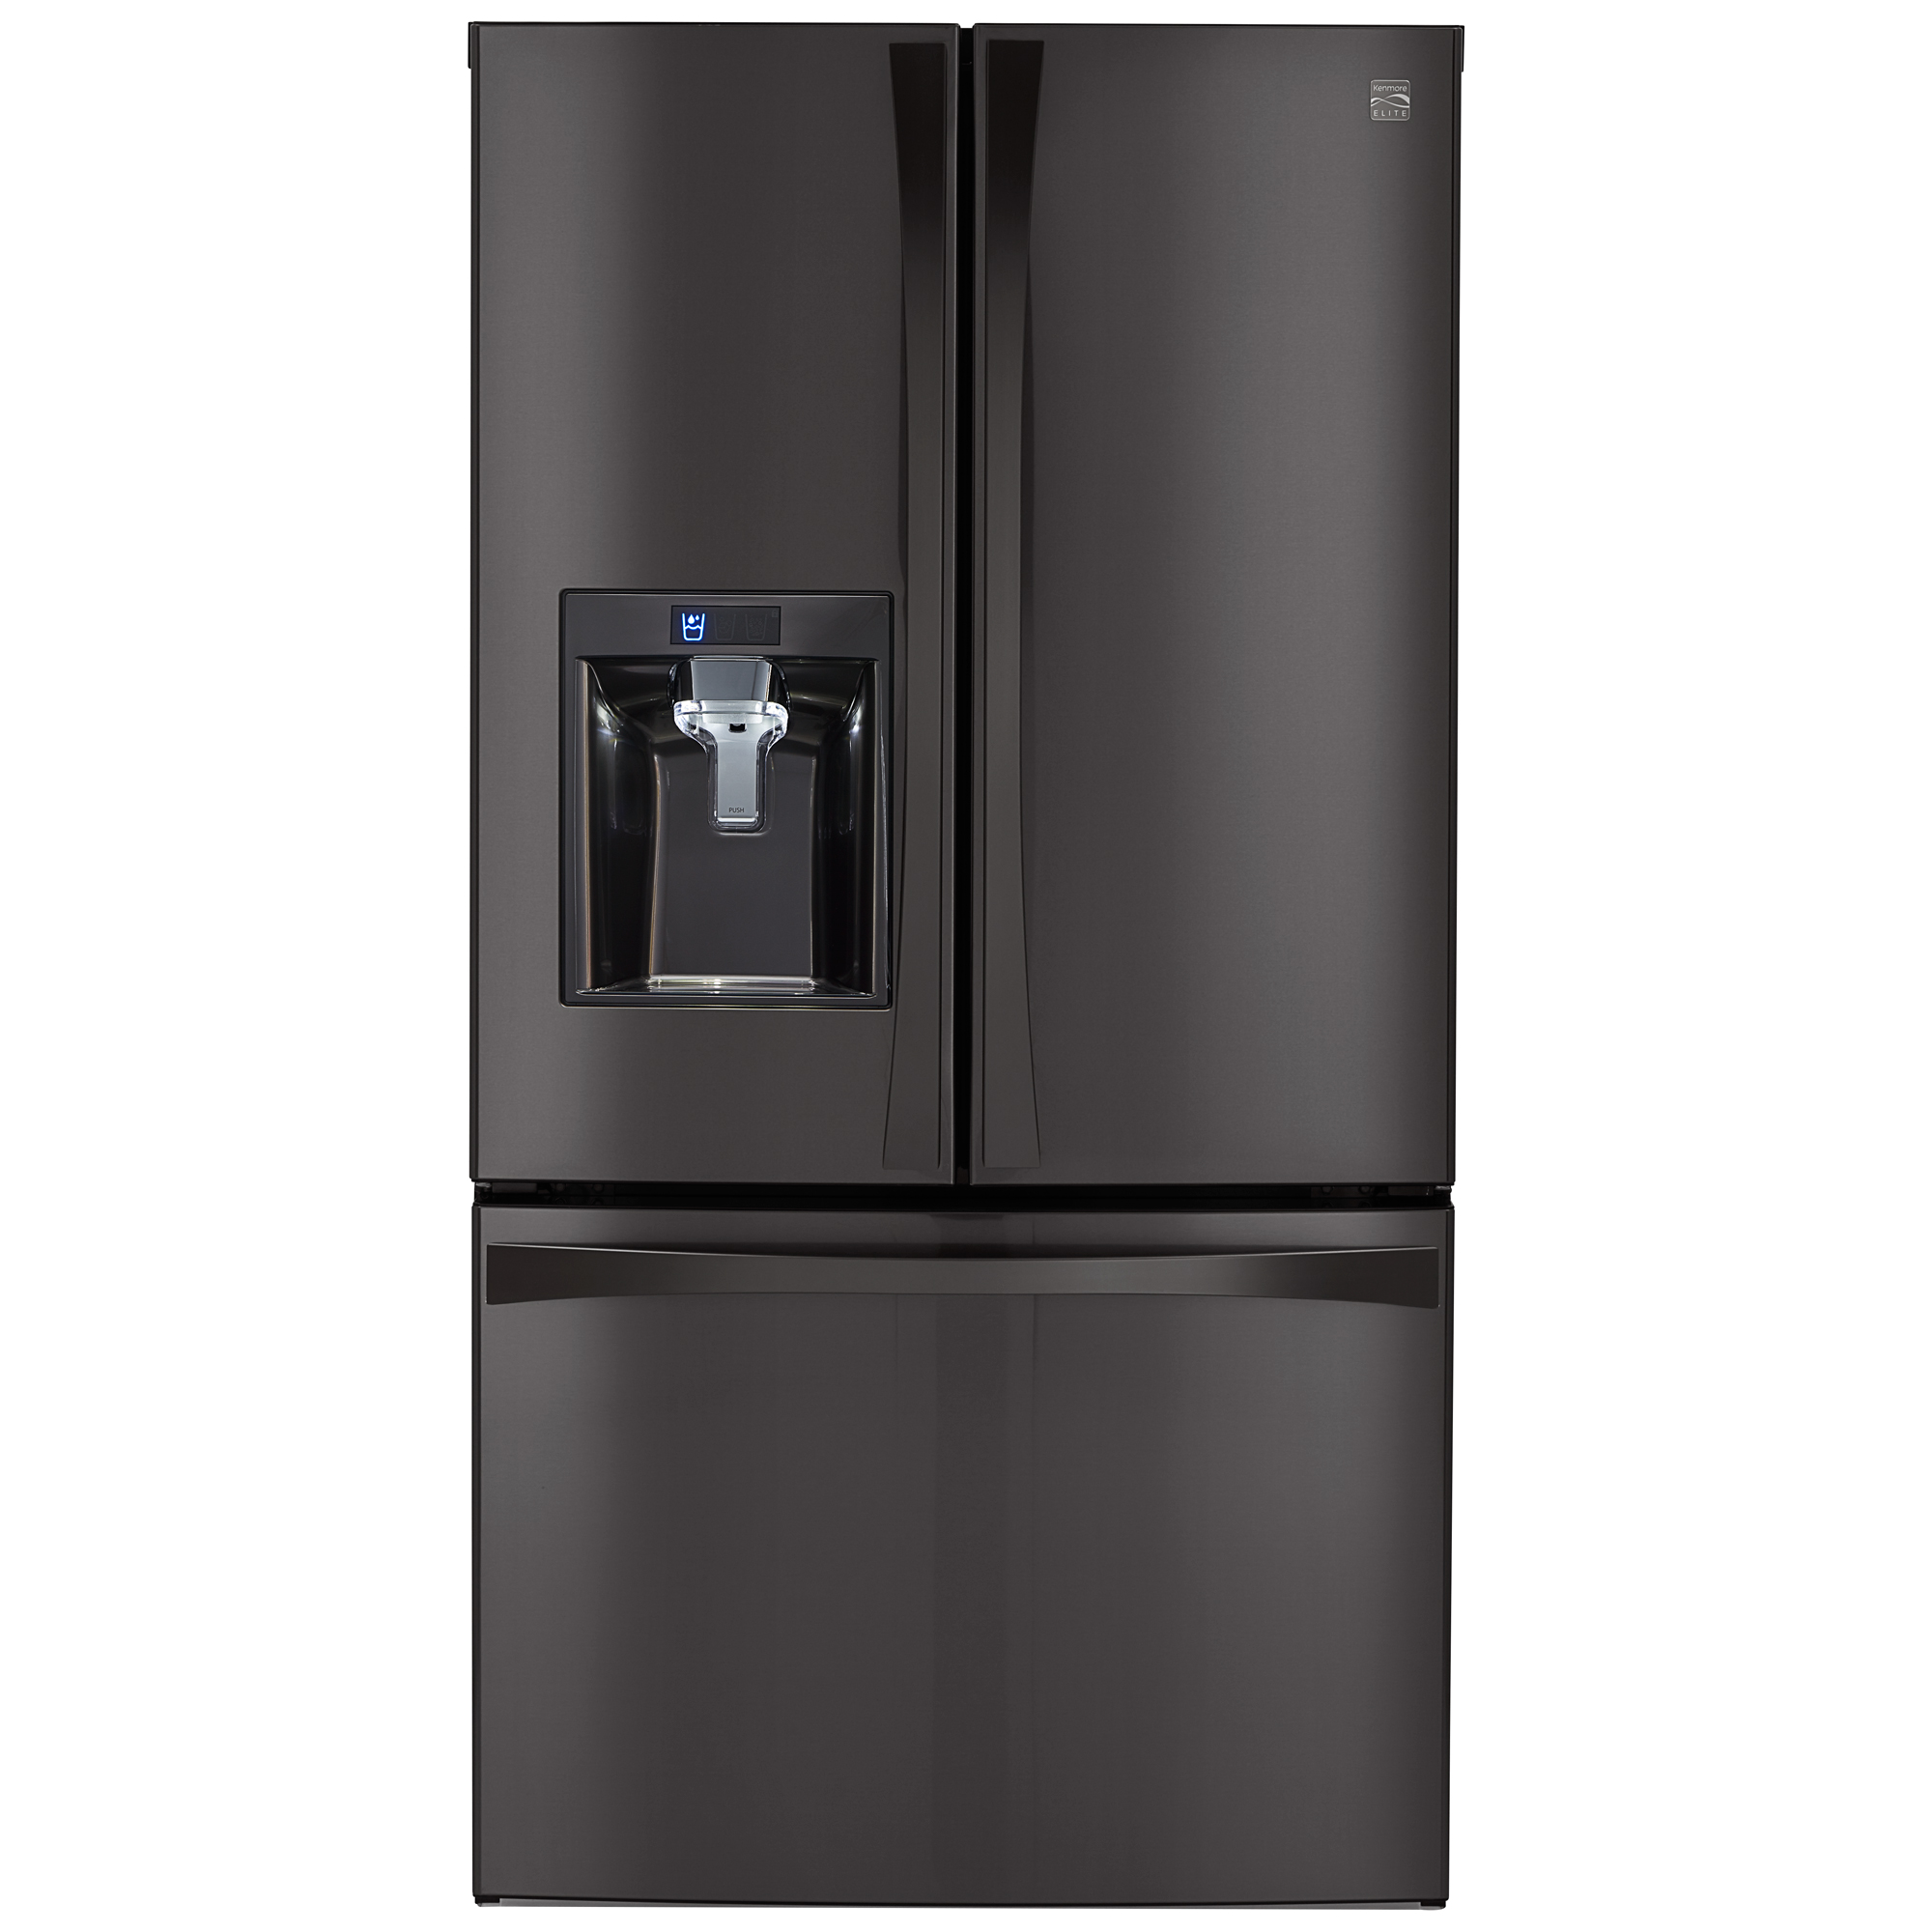 73157-28-7-cu-ft-French-Door-Bottom-Freezer-Refrigerator-%E2%80%93-Black-Stainless-Steel